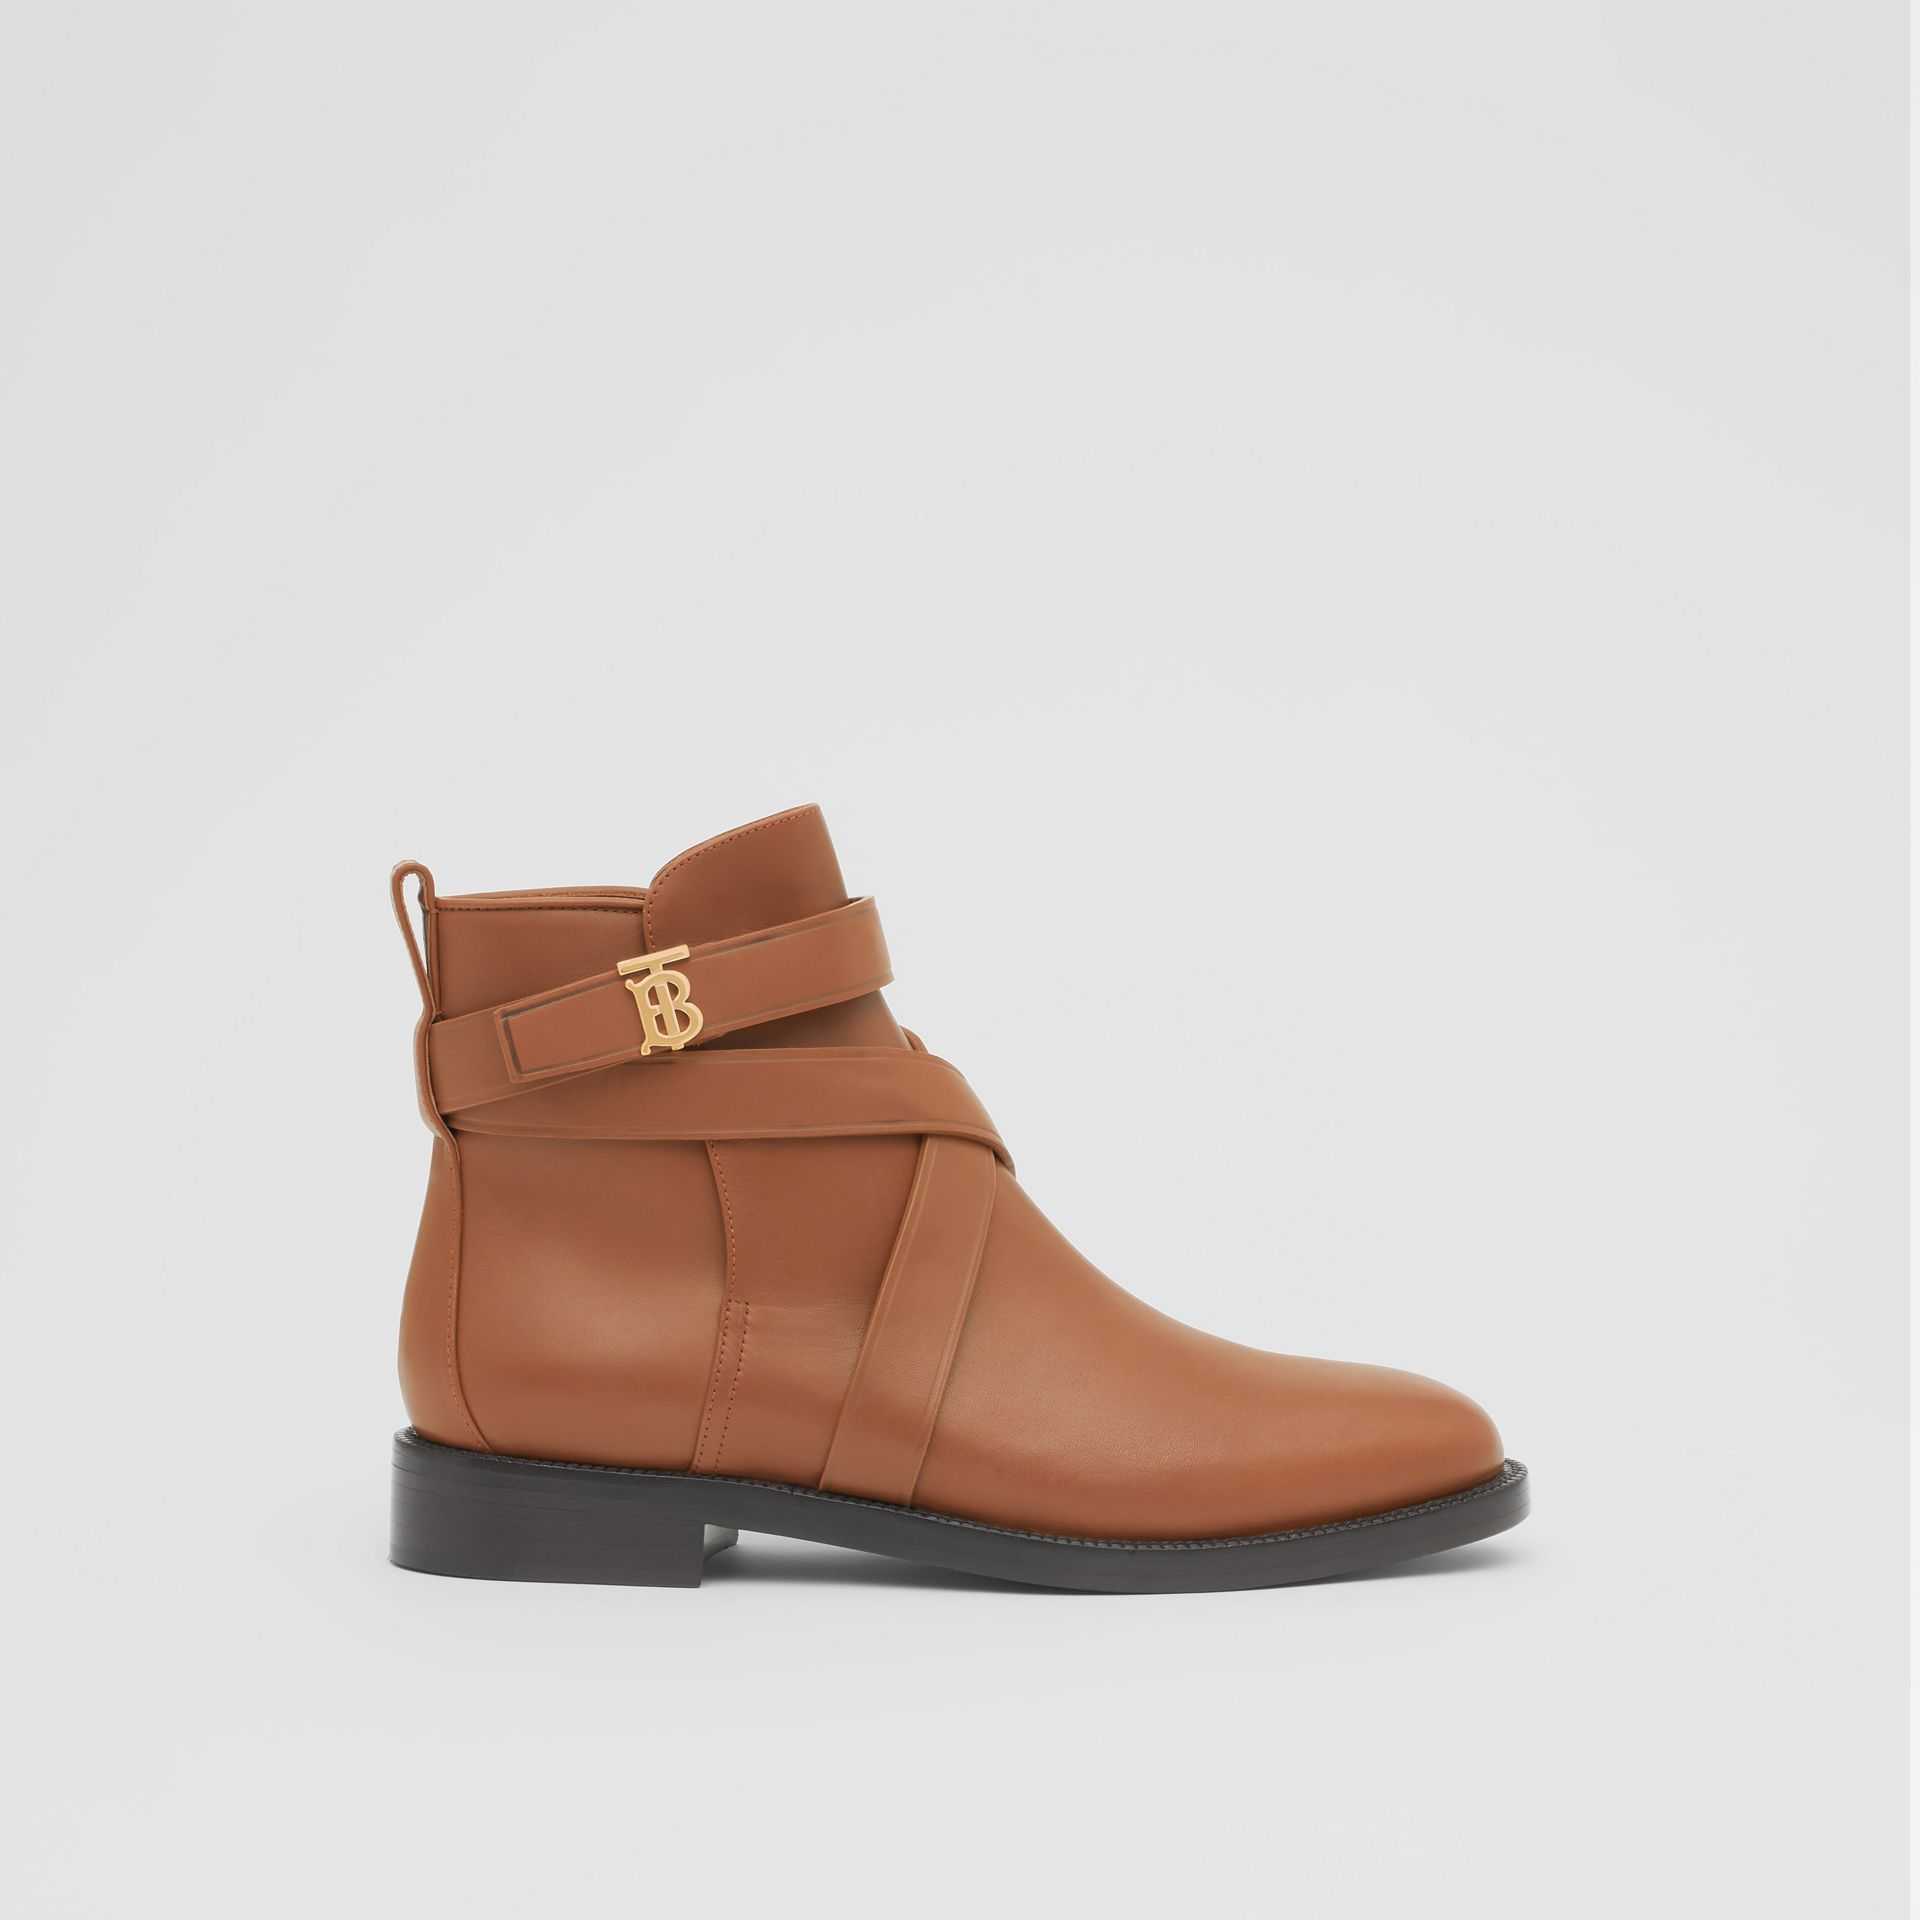 Monogram Motif Leather Ankle Boots in Tan - Women | Burberry - gallery image 5